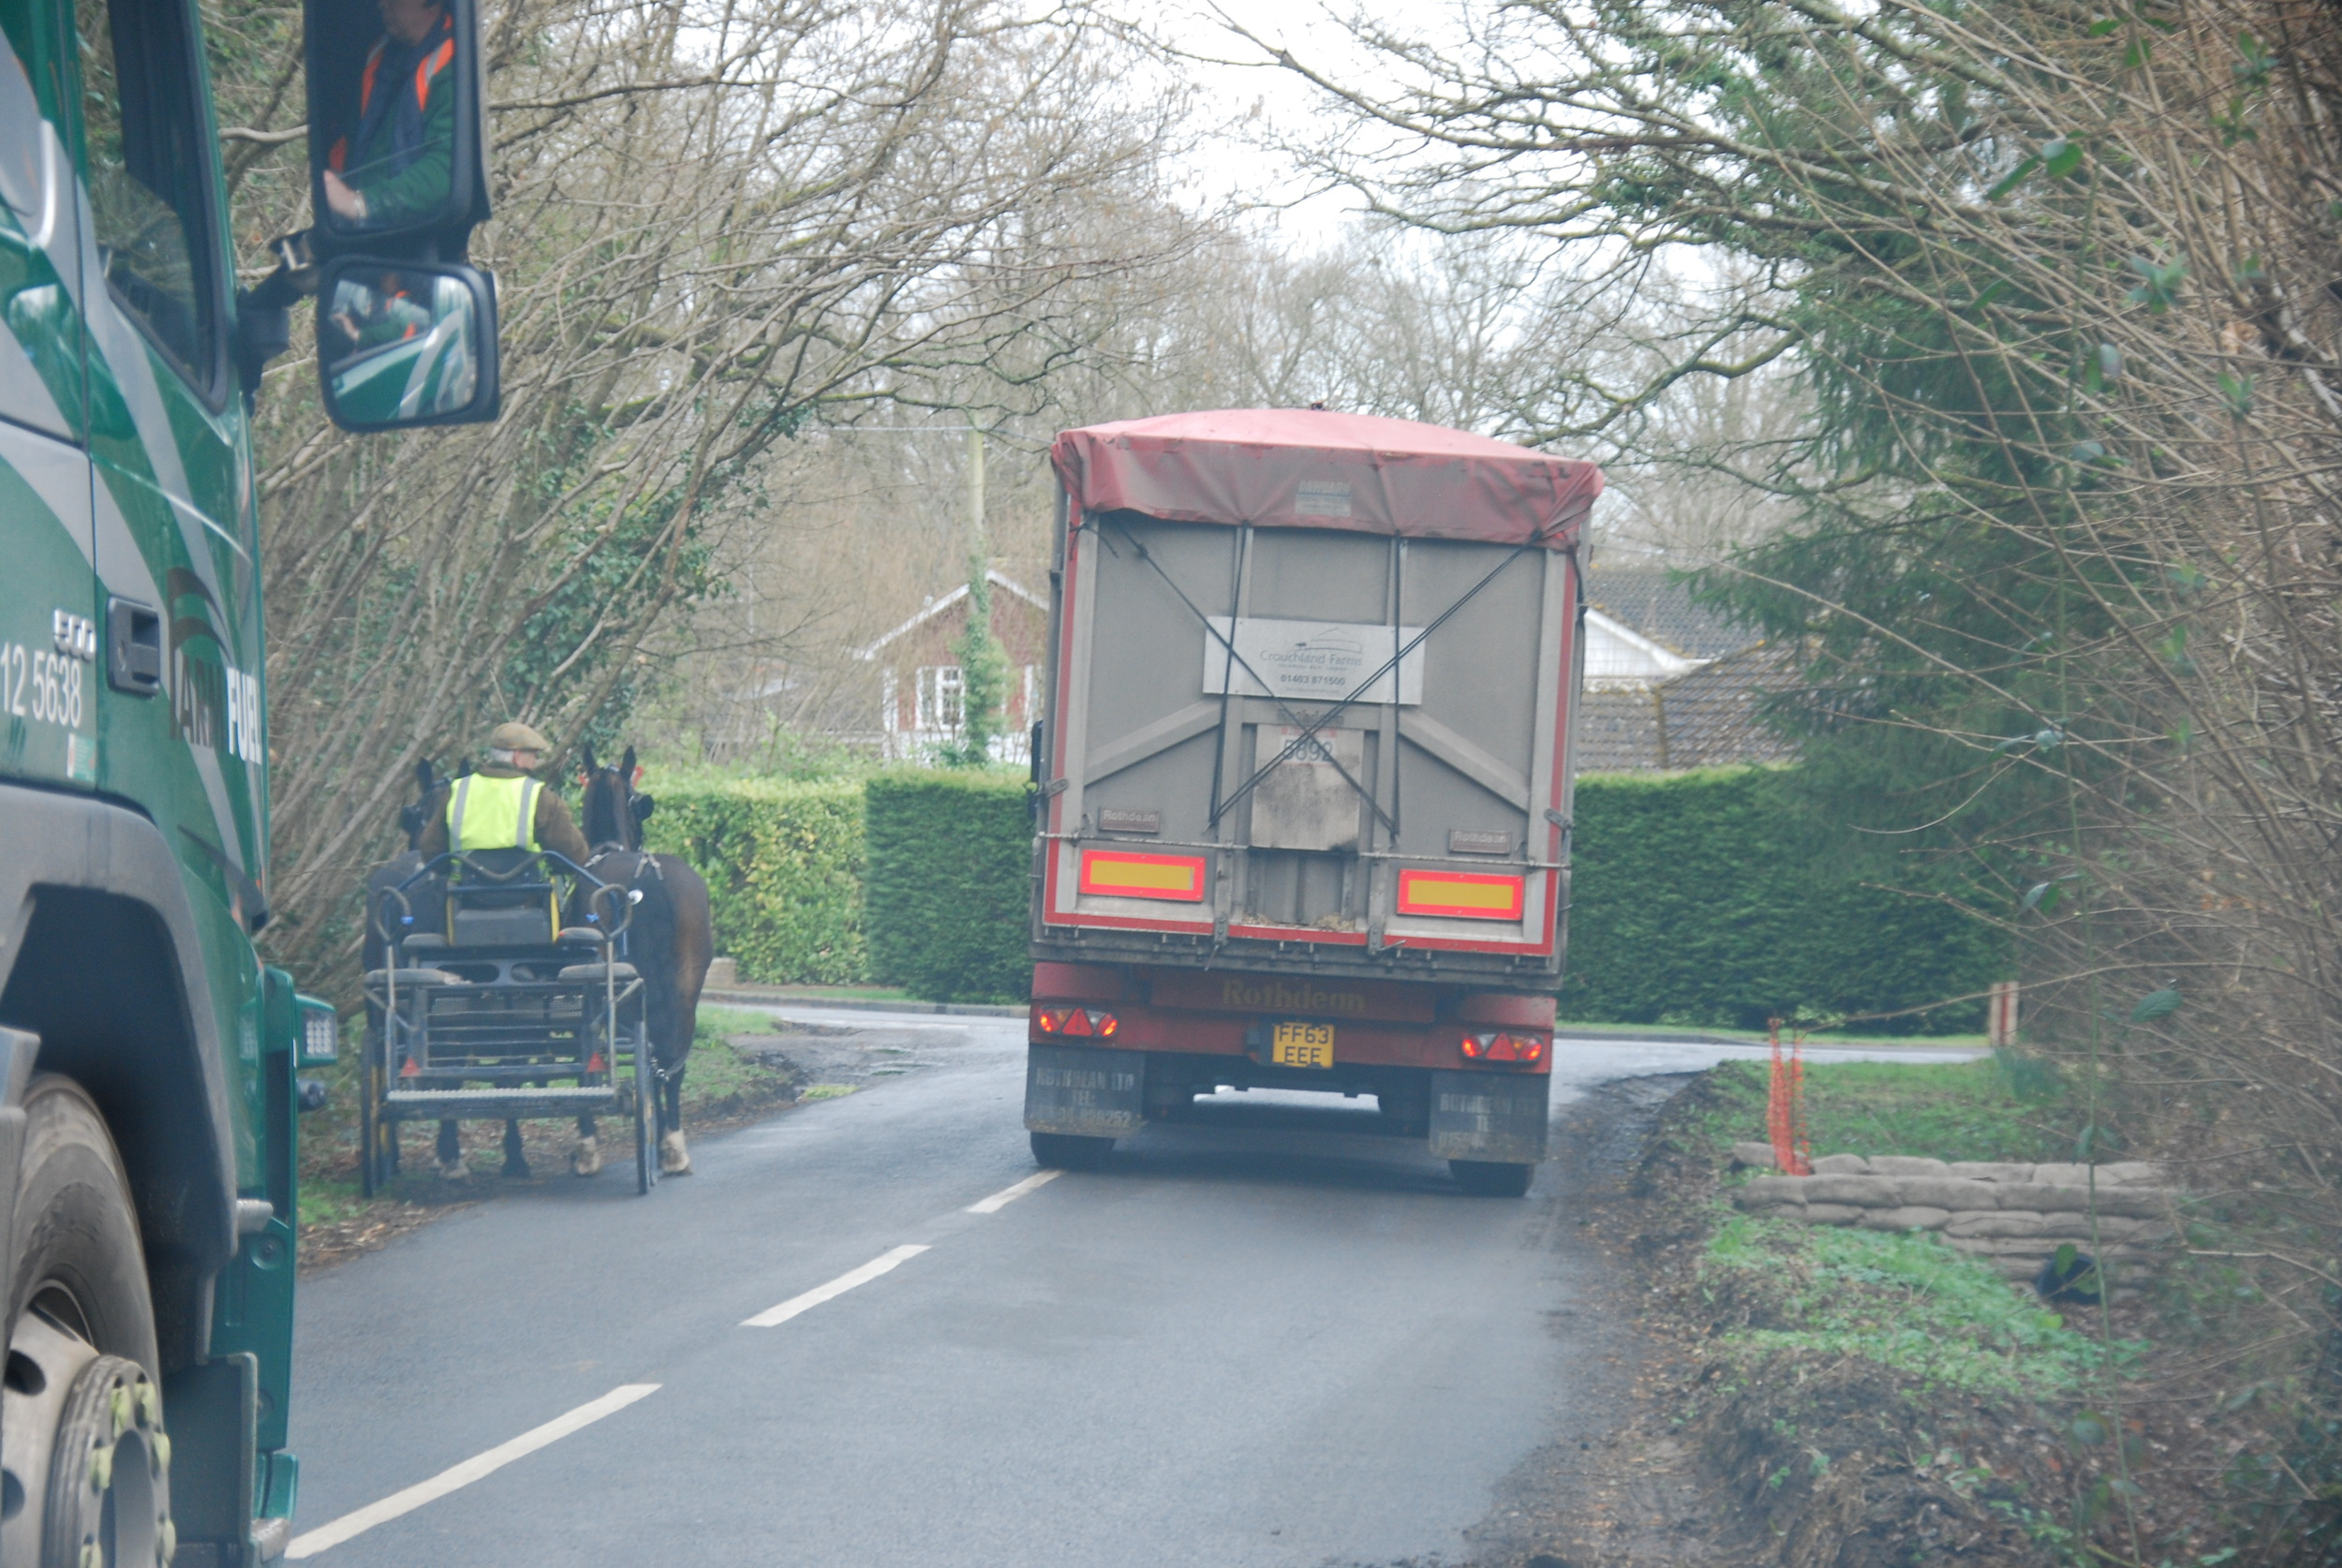 Two Crouchland HGVs create havoc for the carriage driver and his horses